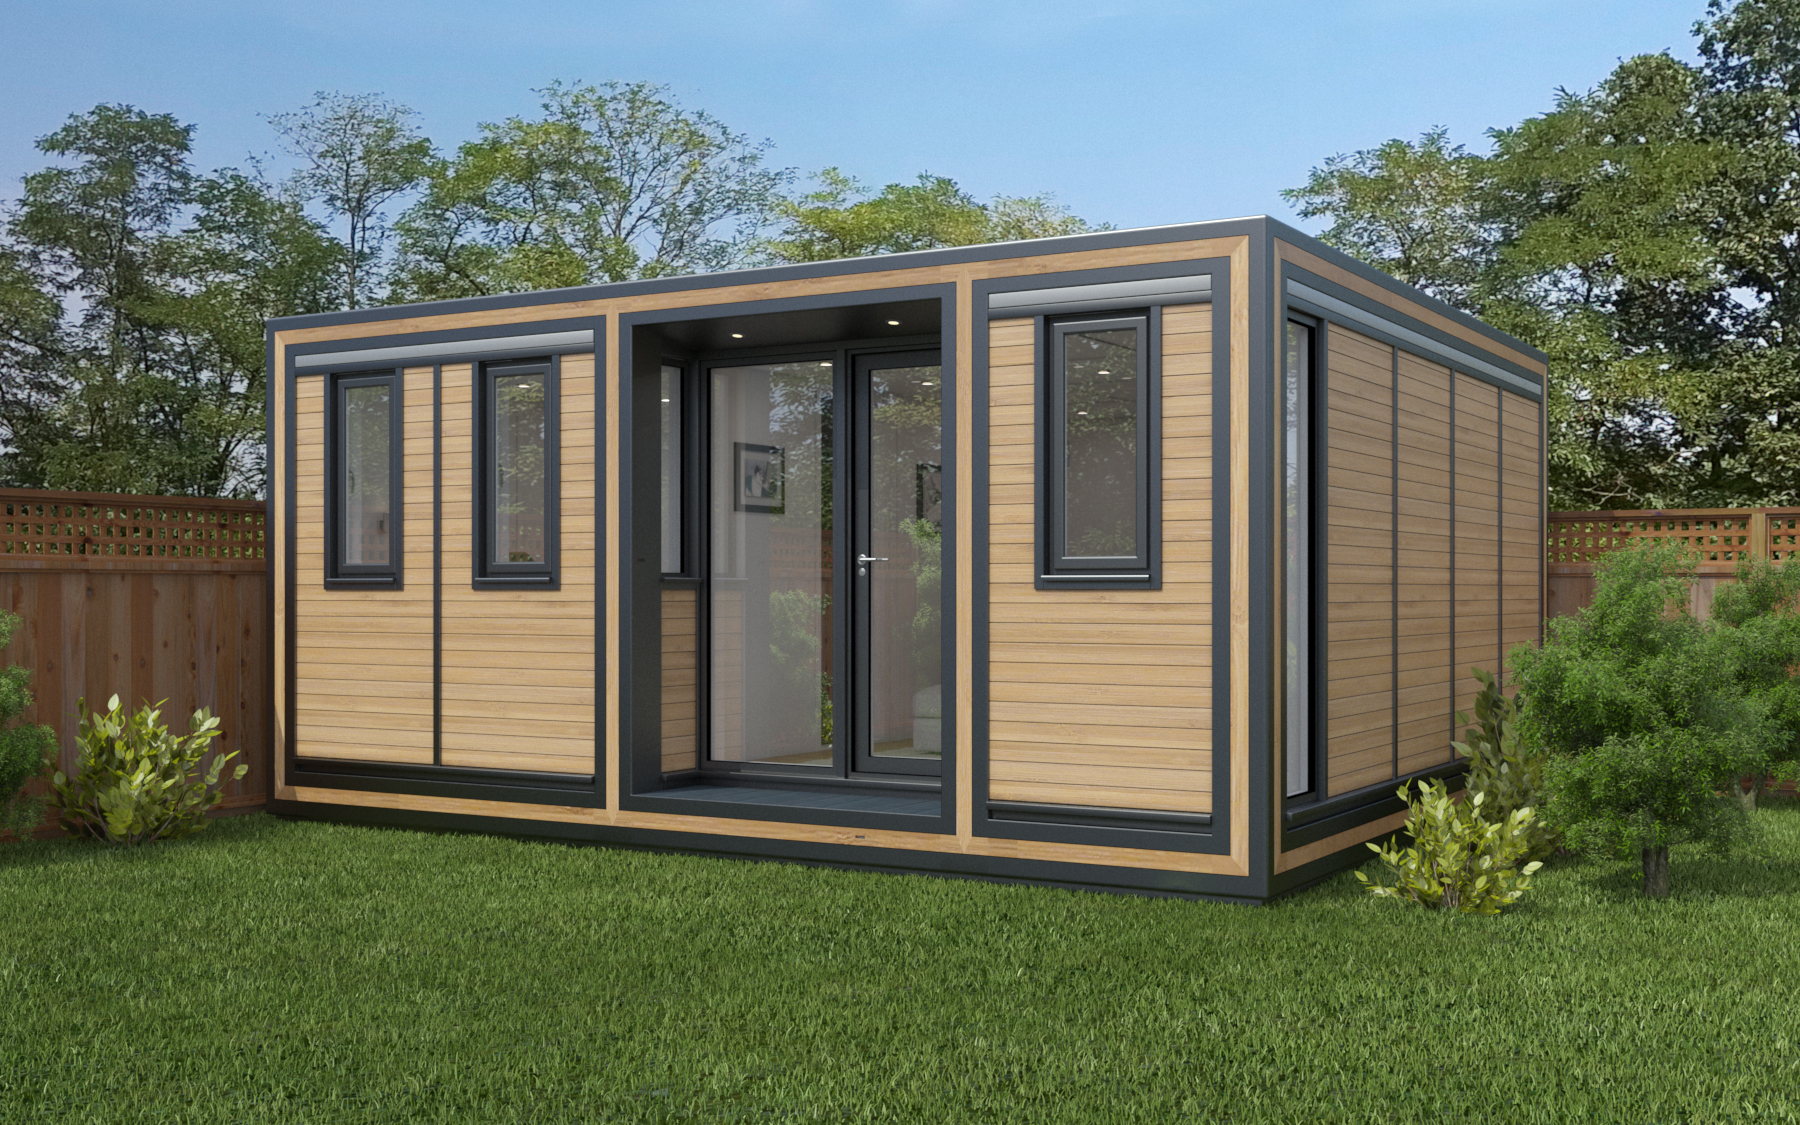 ZEDBOX 545  (5 x 4.5)  Internal Size: 5330 x 4817  External Size: 5800 x 5287  Bed Options: Single or Double  Kitchen Options: Micro Kitchen or Kitchen  Wet Room Options: Yes  Portico: Yes  Price:  £38,000    Optional Extras    Request Zedbox Catalogue